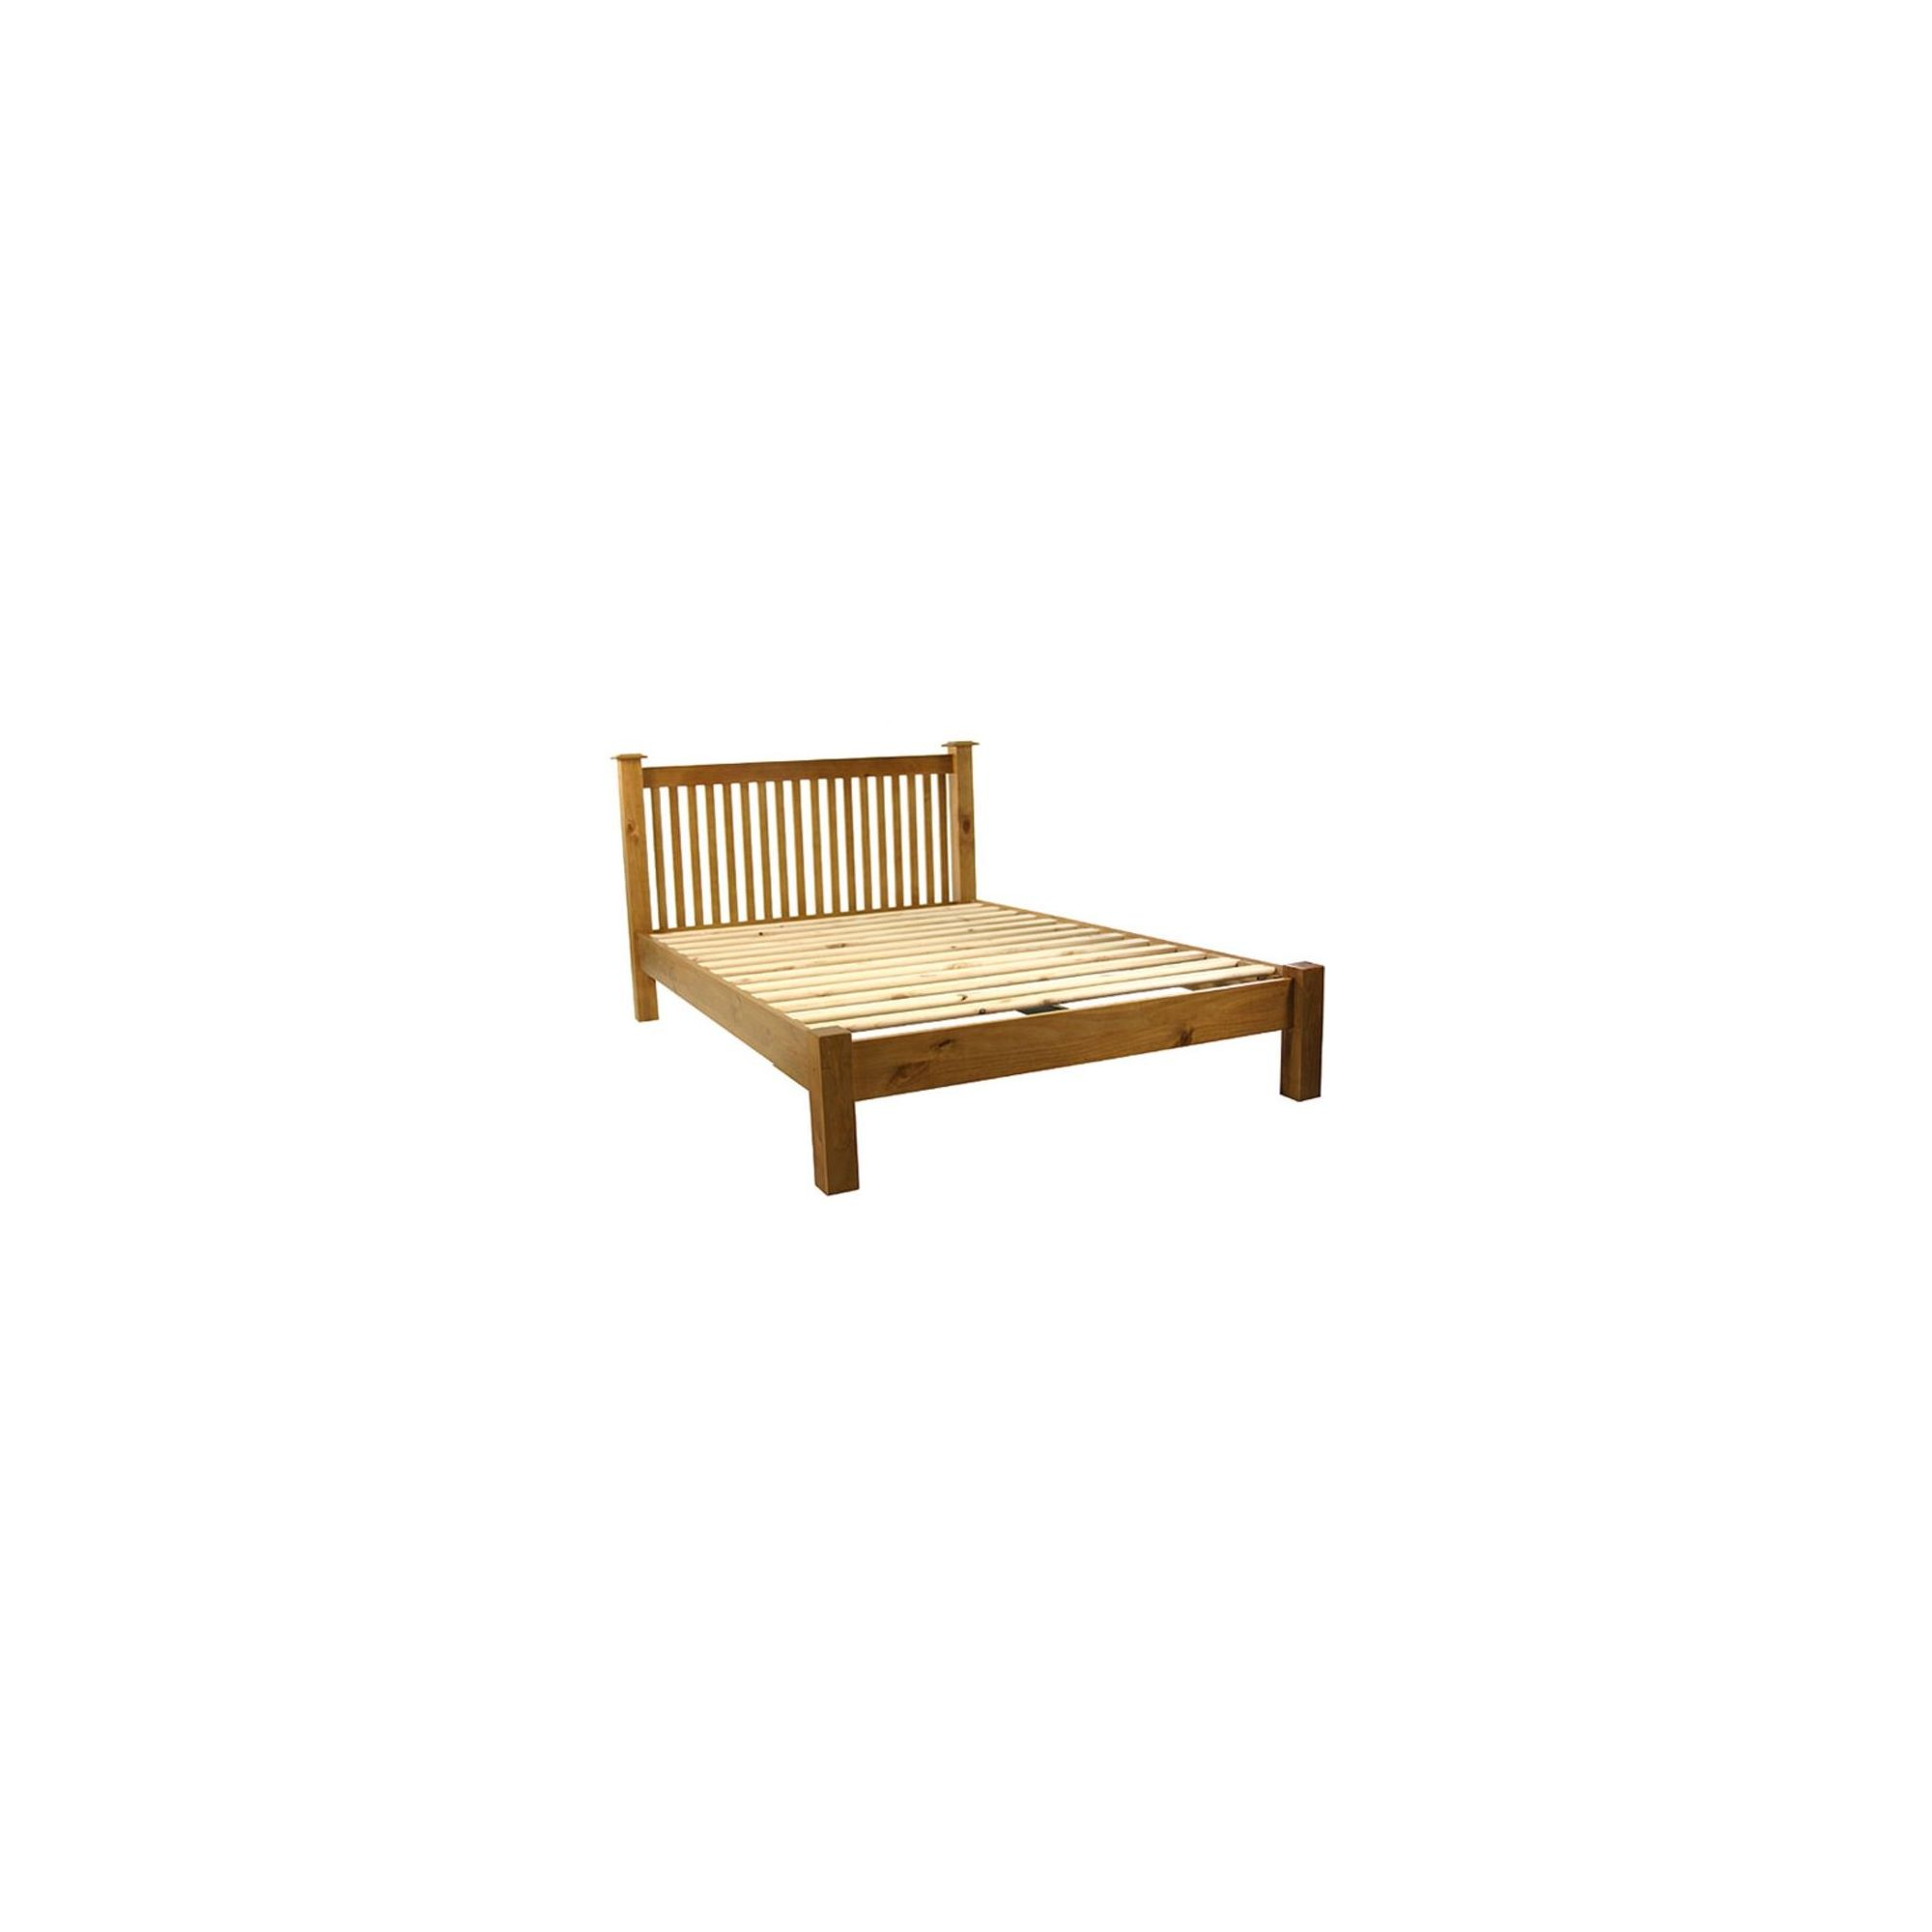 Kelburn Furniture Pine Low Foot End Bed Frame - Double at Tesco Direct